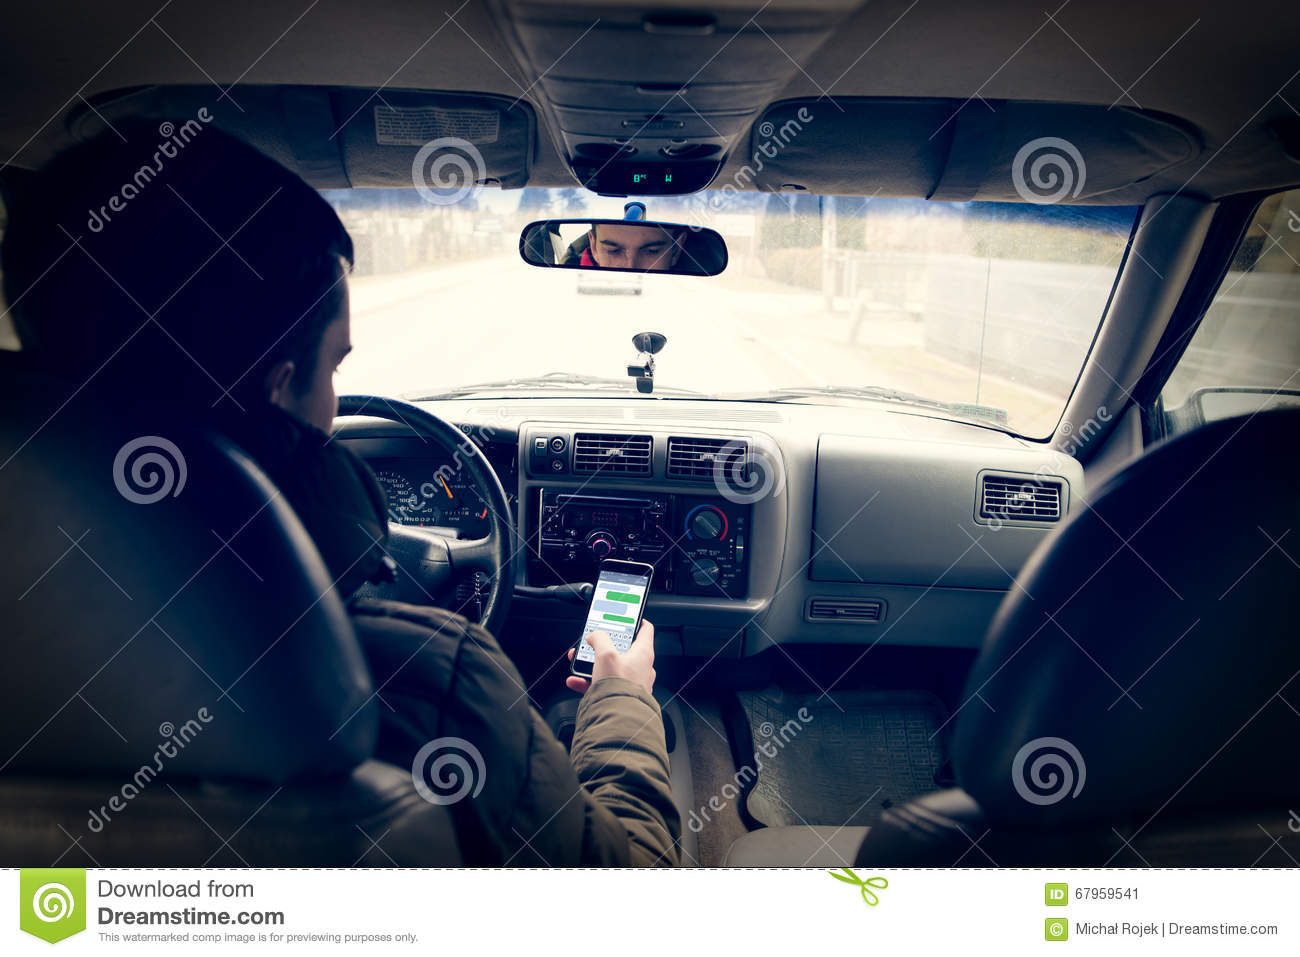 Dangerous driving while writing SMS